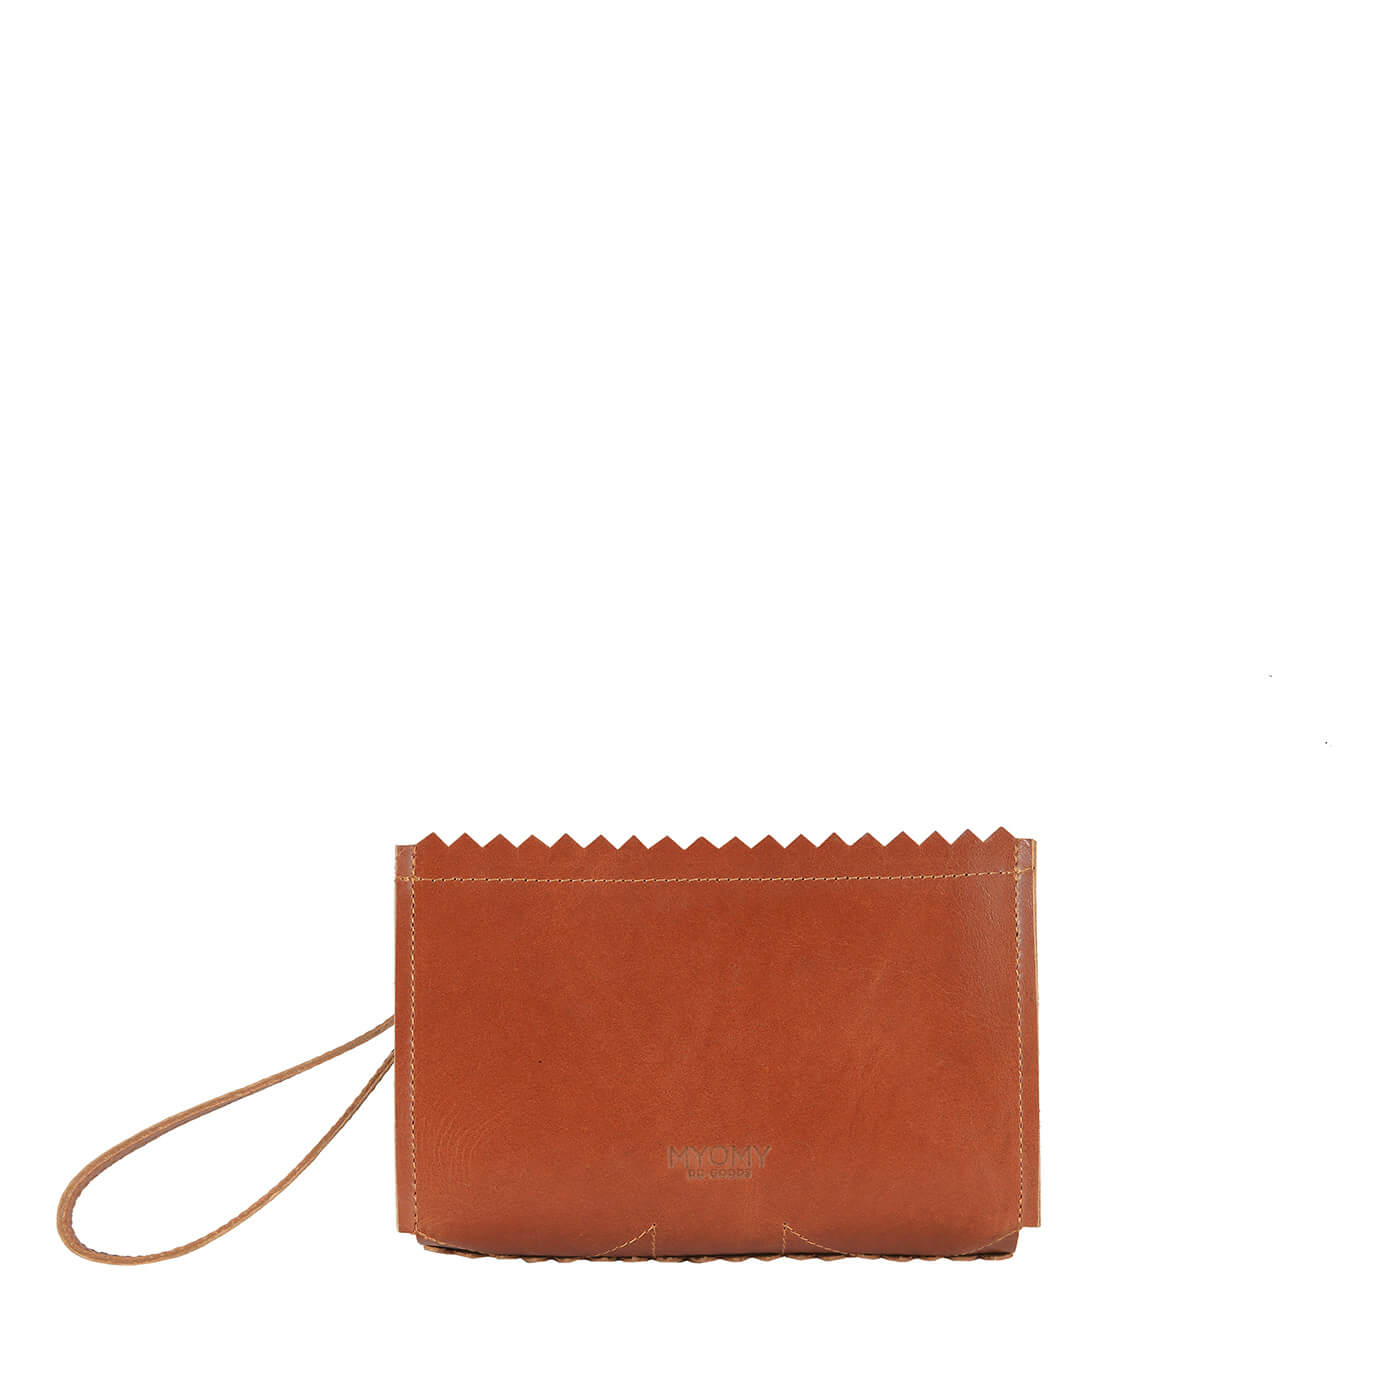 [PRE-ORDER] MY PAPER BAG Make-up bag – hunter waxy cognac